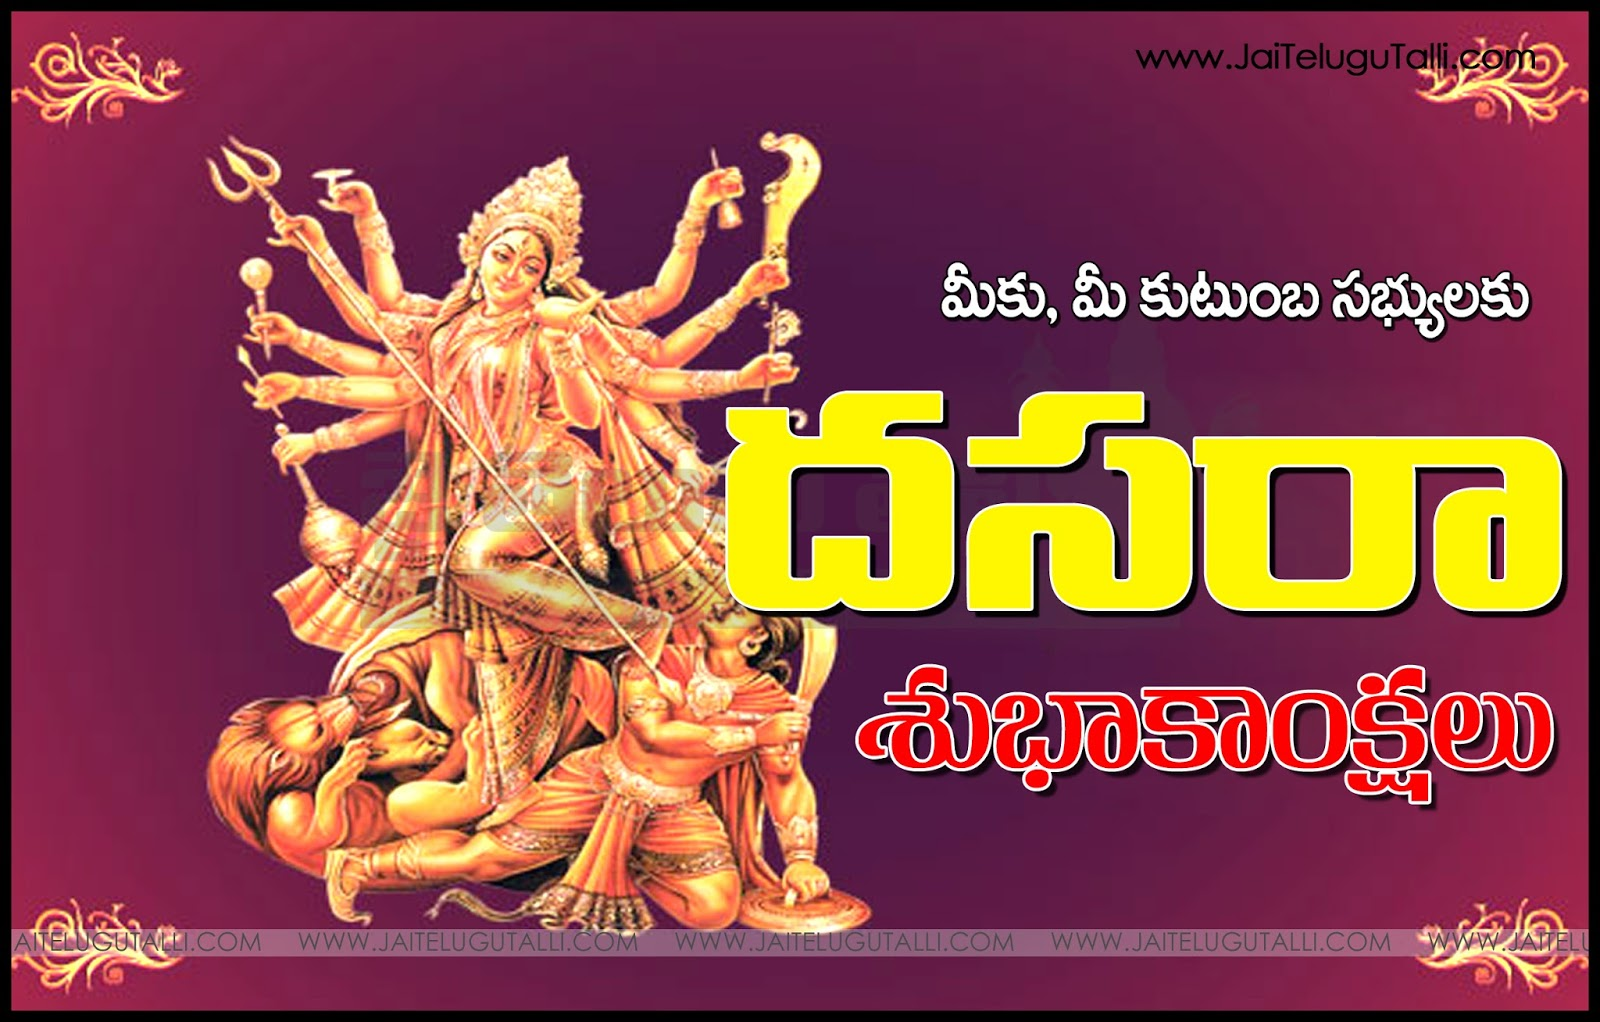 Happy dussehra greetings wallpapers 2017 wishes in telugu wallpapers here is a happy dussehra telugu greetingshappy dussehra 2016 quotes sms messages m4hsunfo